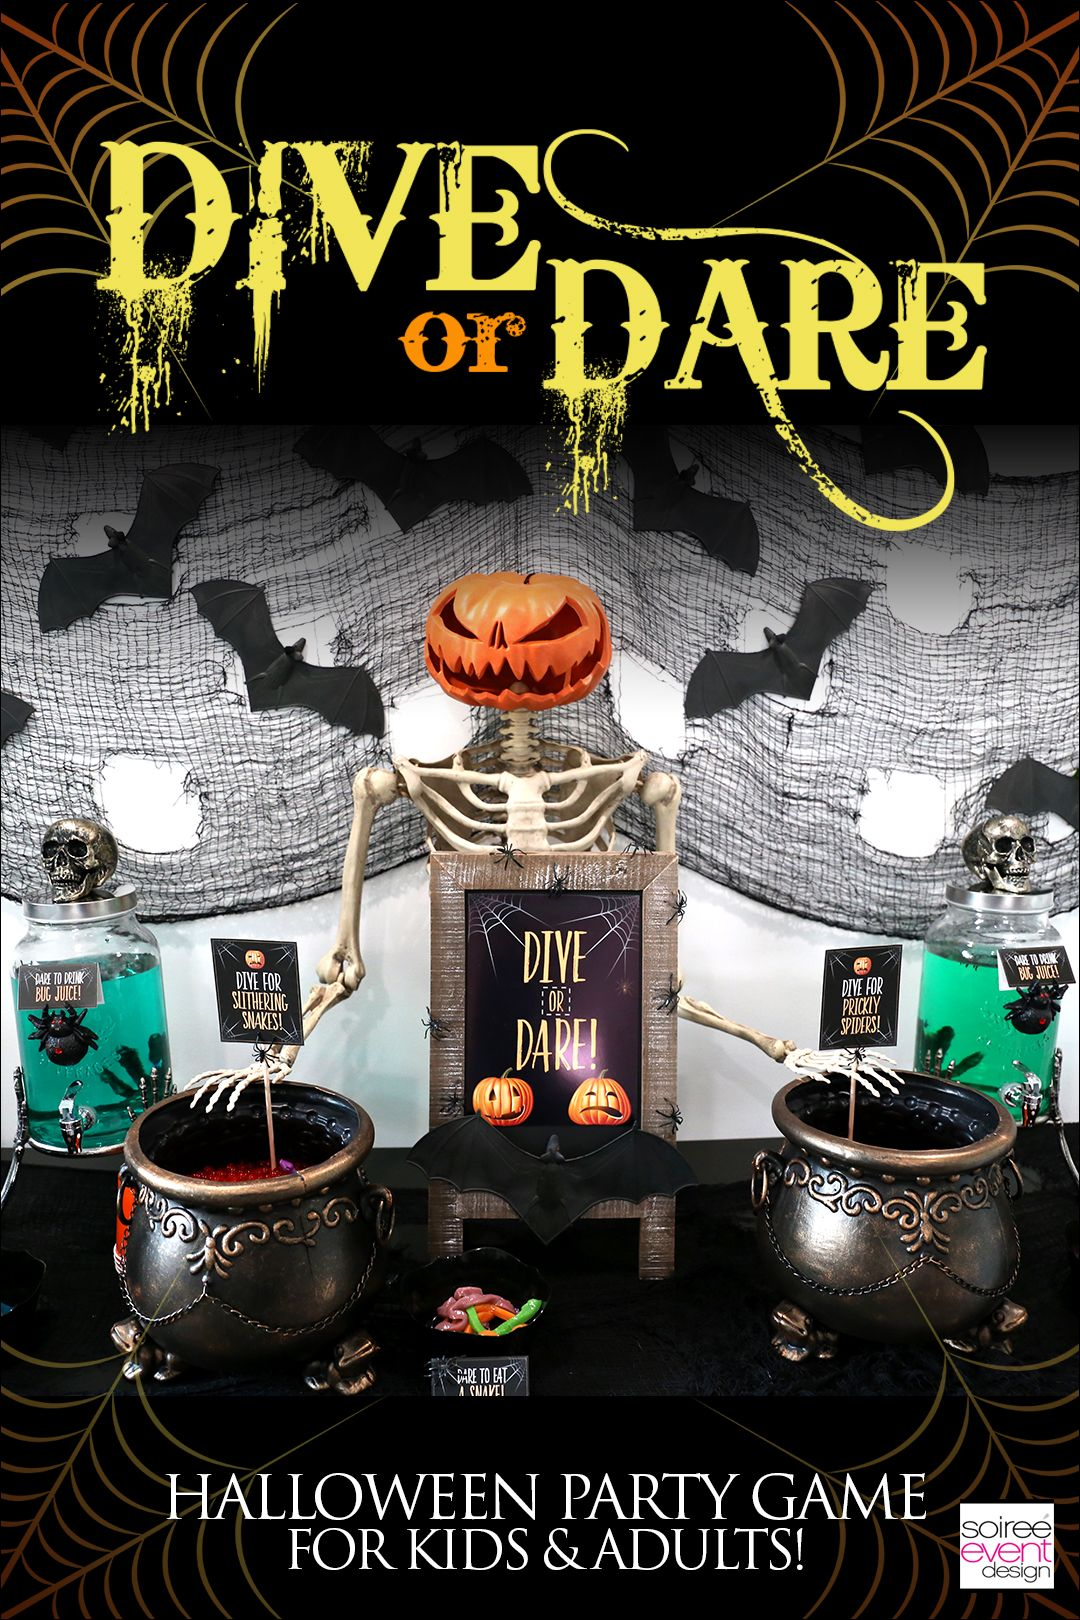 Halloween Party Games Dive or Dare! (With images